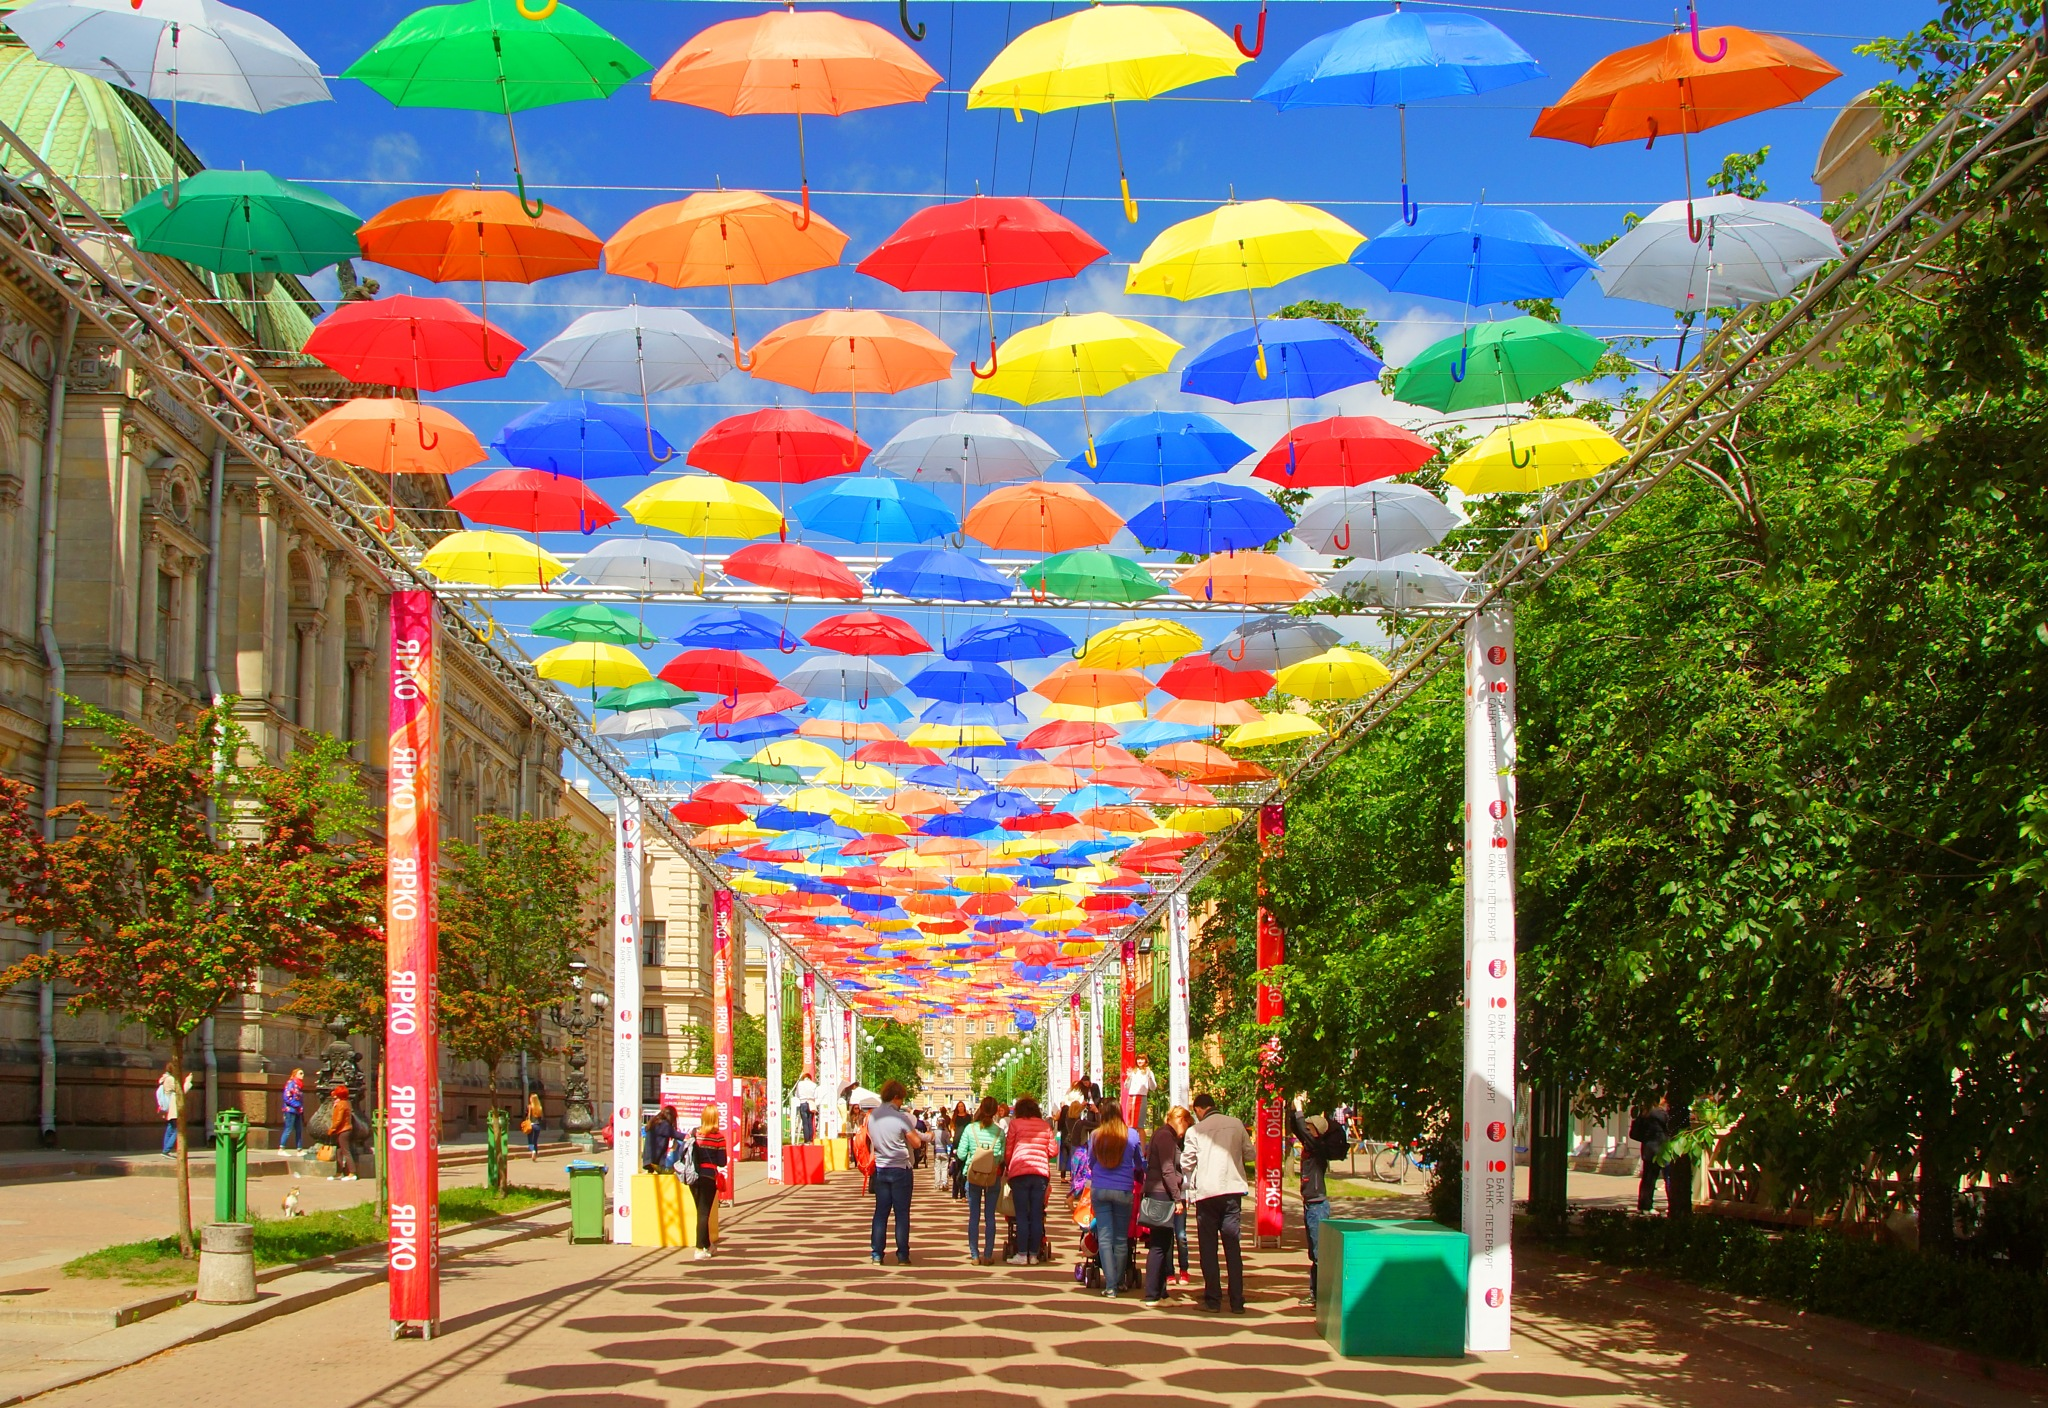 Alley colored umbrellas by Sergey Andreevich